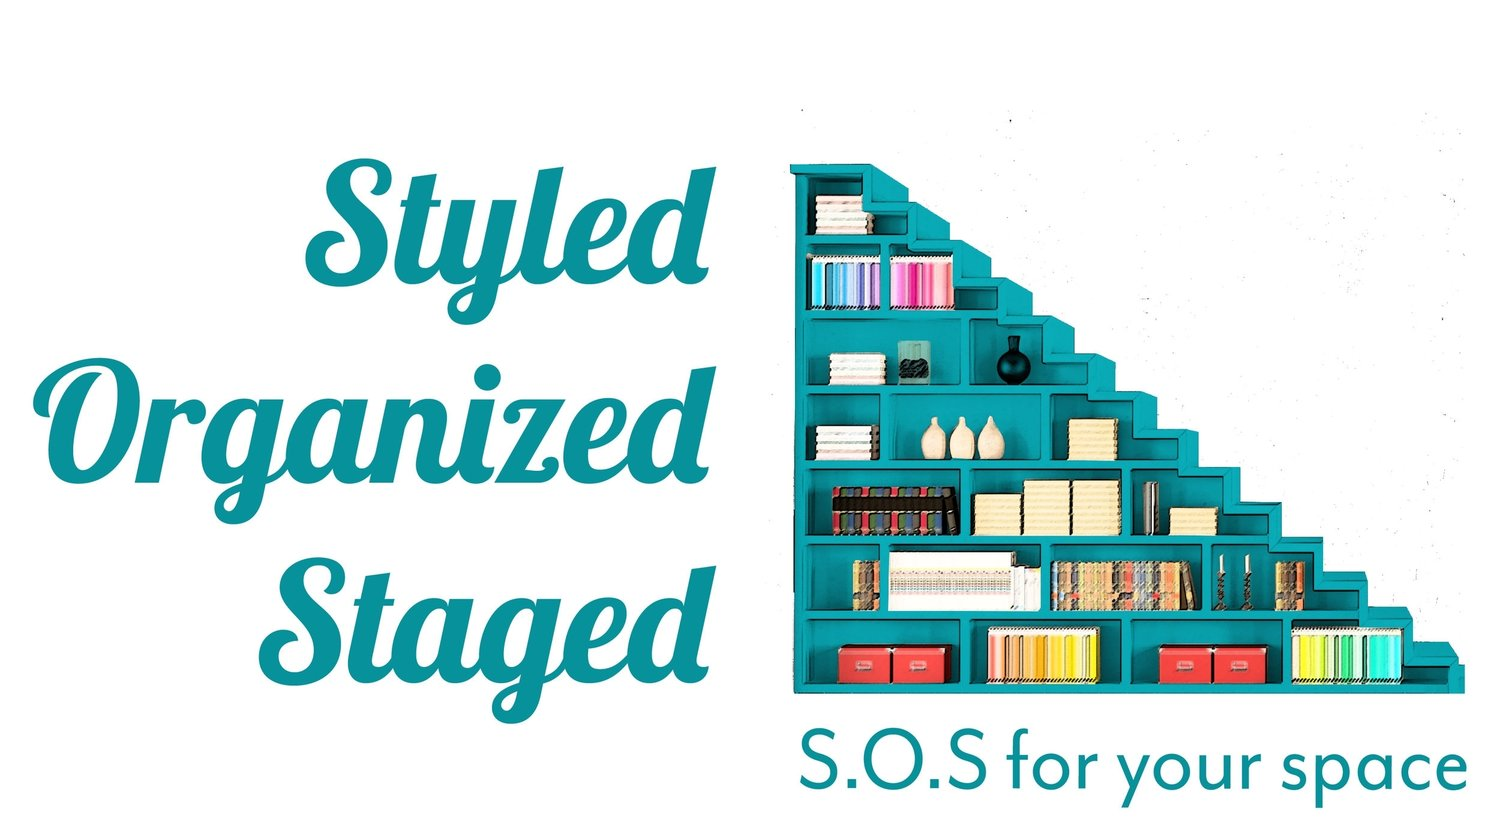 Styled.Organized.Staged